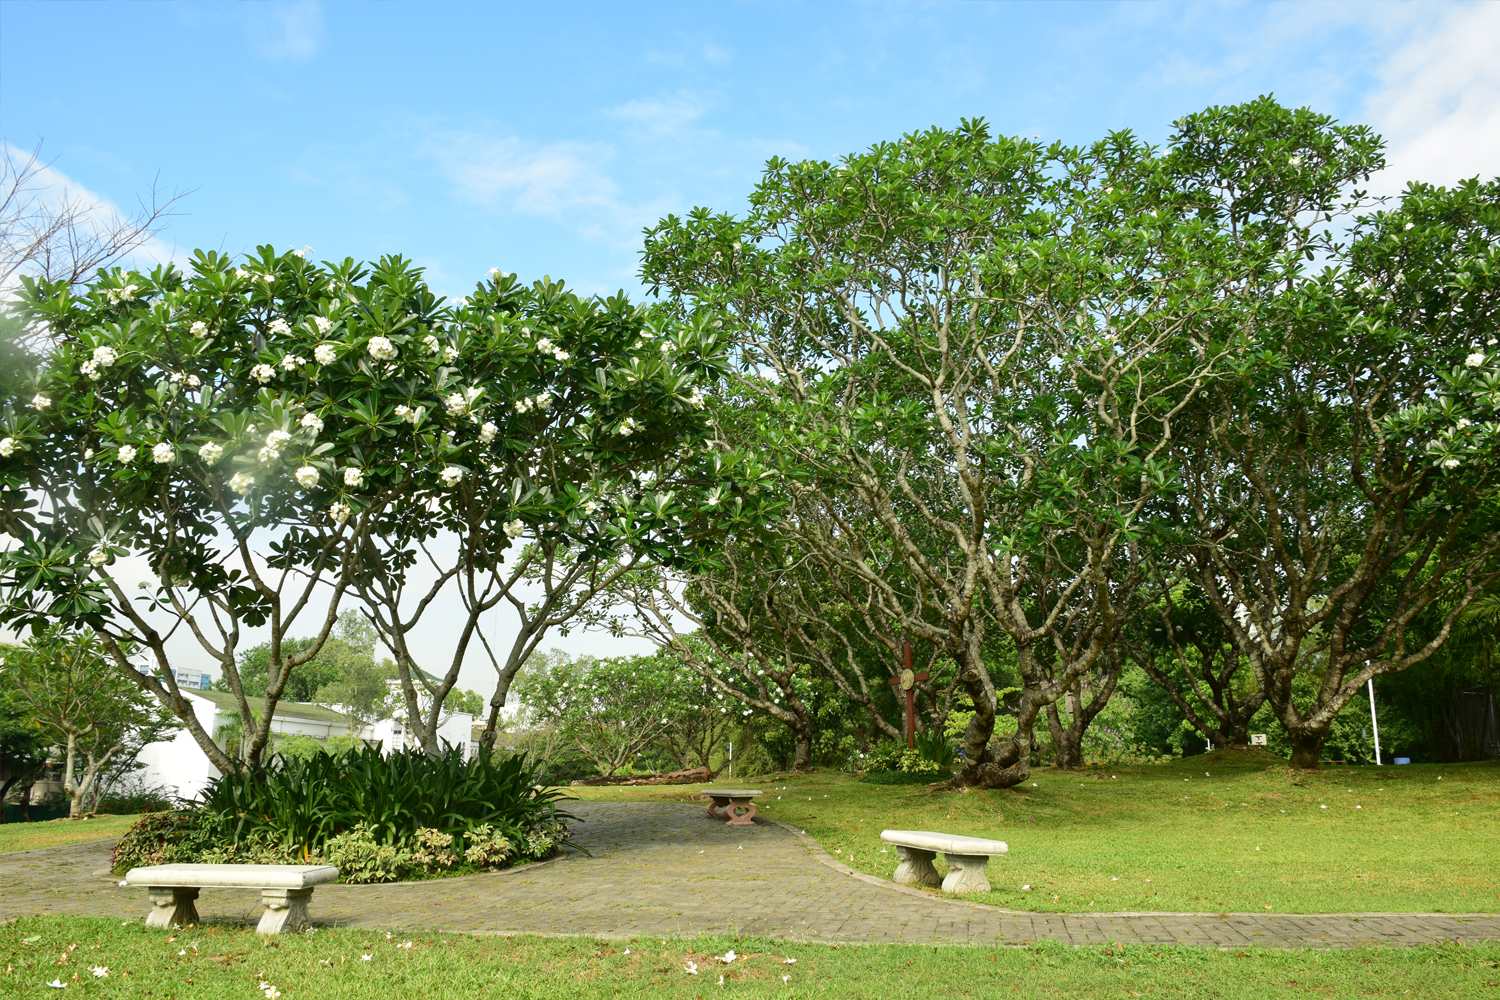 Mausoleum area